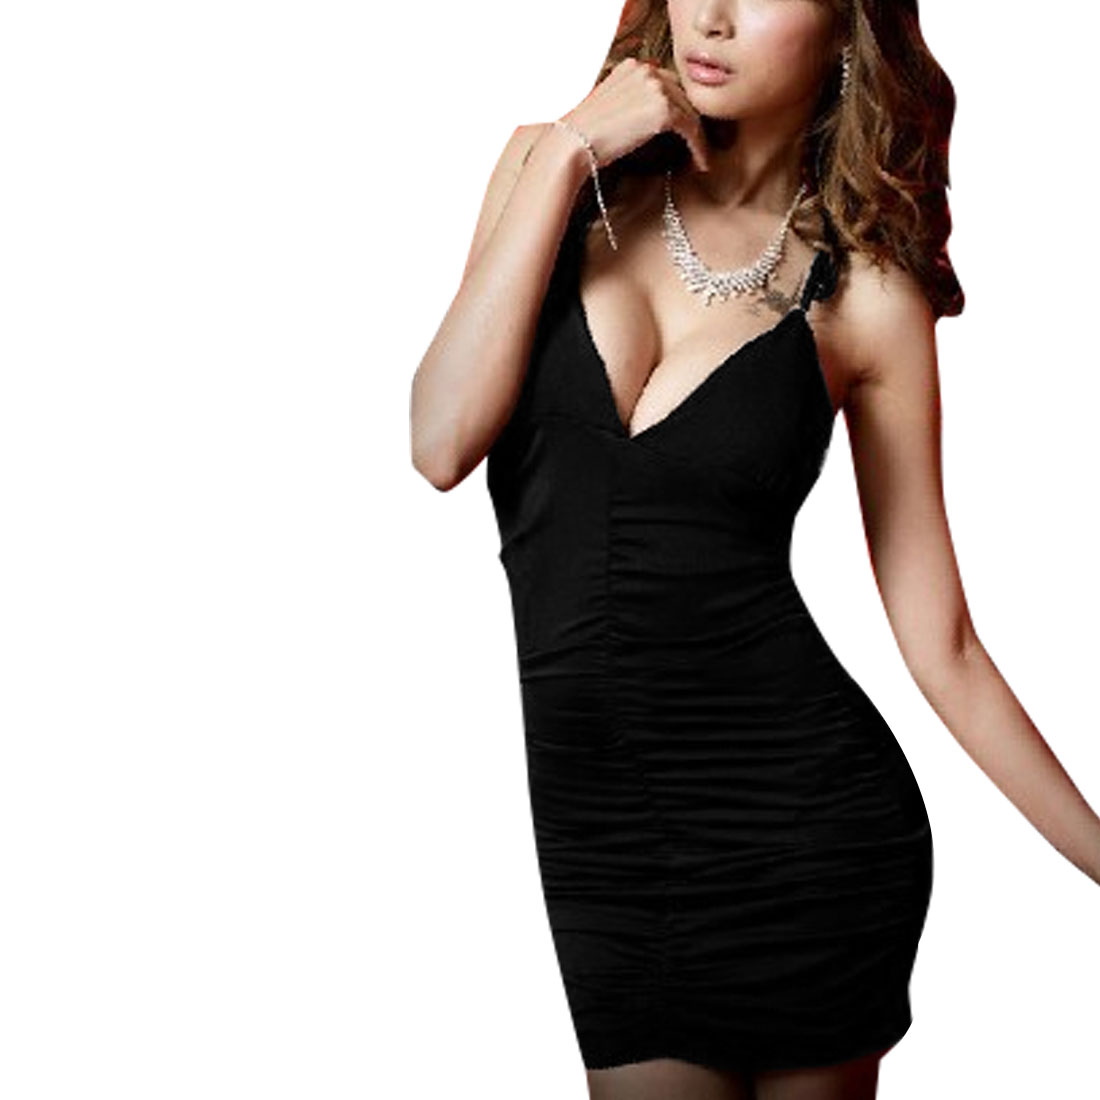 Woman New Fashion Crochet Hollow Racerback Black Bodycon Mini Dress S